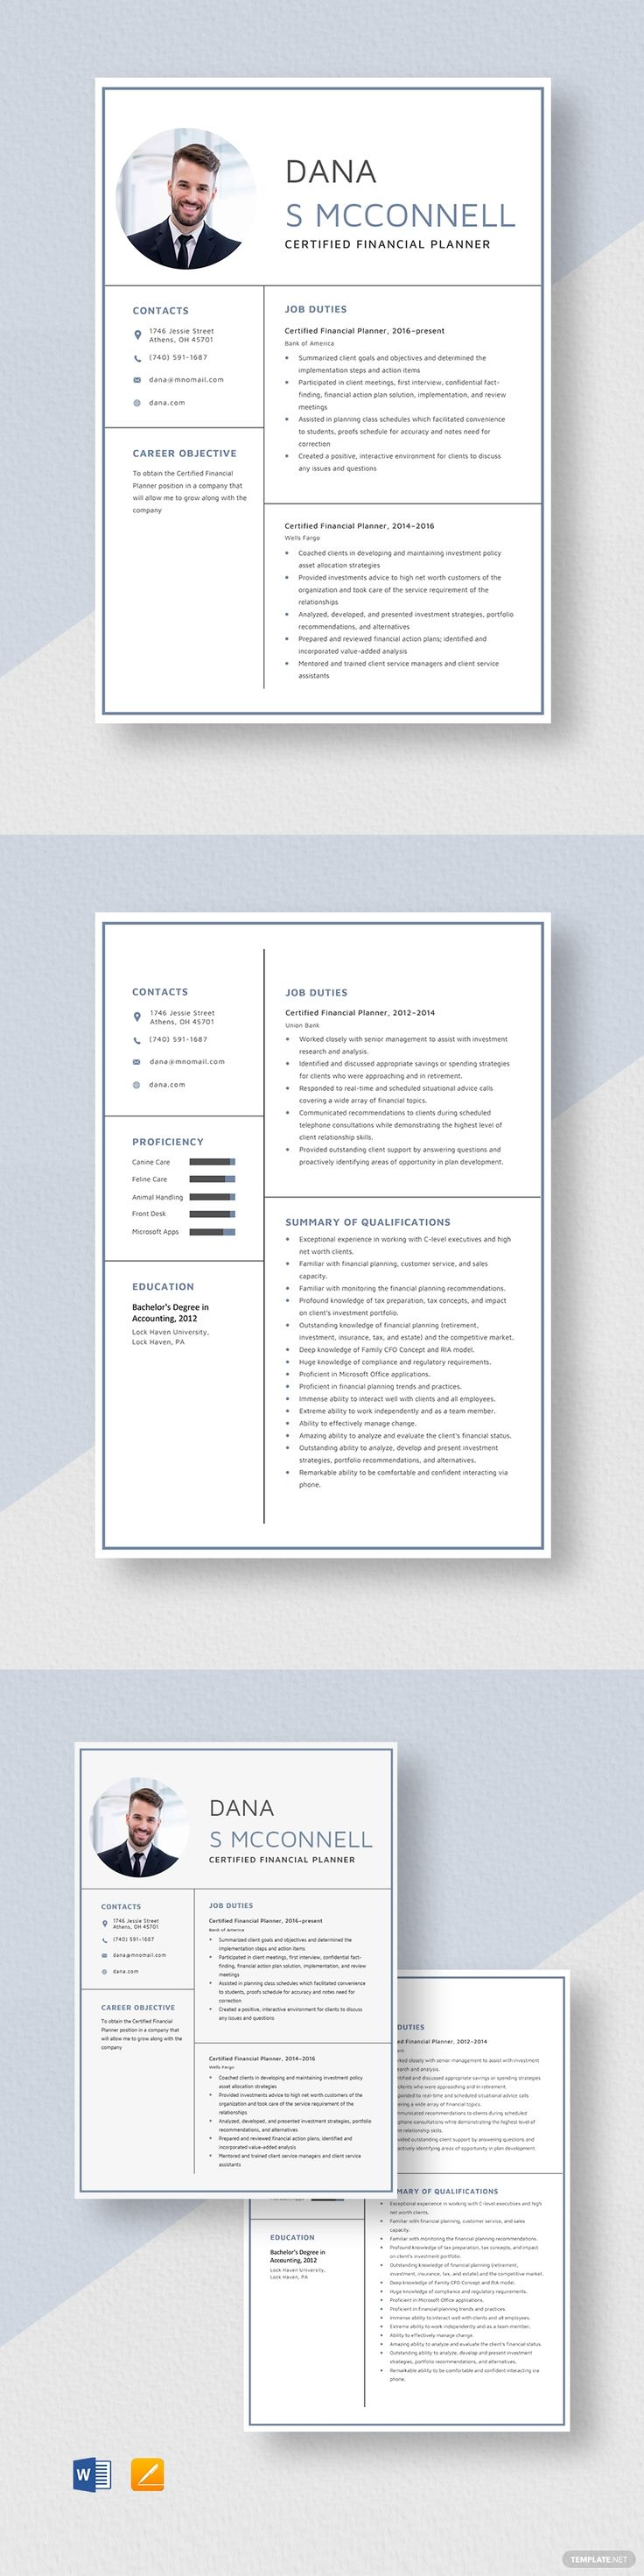 Certified Financial Planner Resume in 2020 Resume